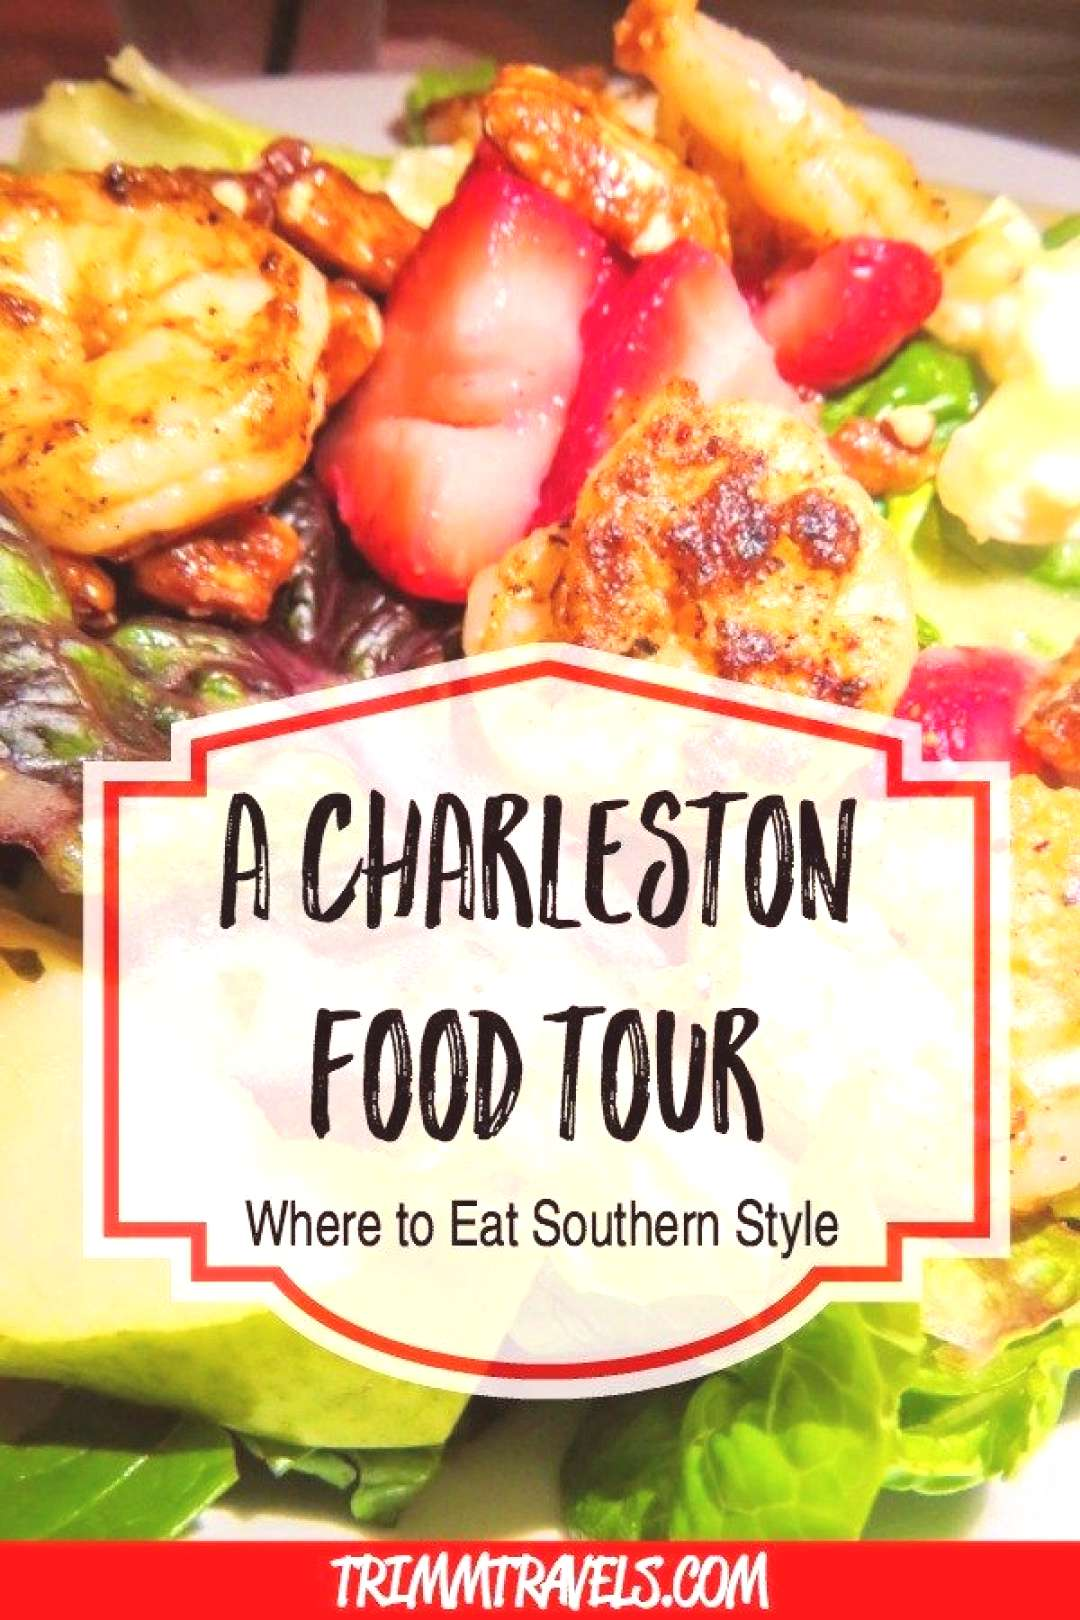 A Charleston Food Tour Where to Eat Southern Style Eating locally is a great way to get to know an